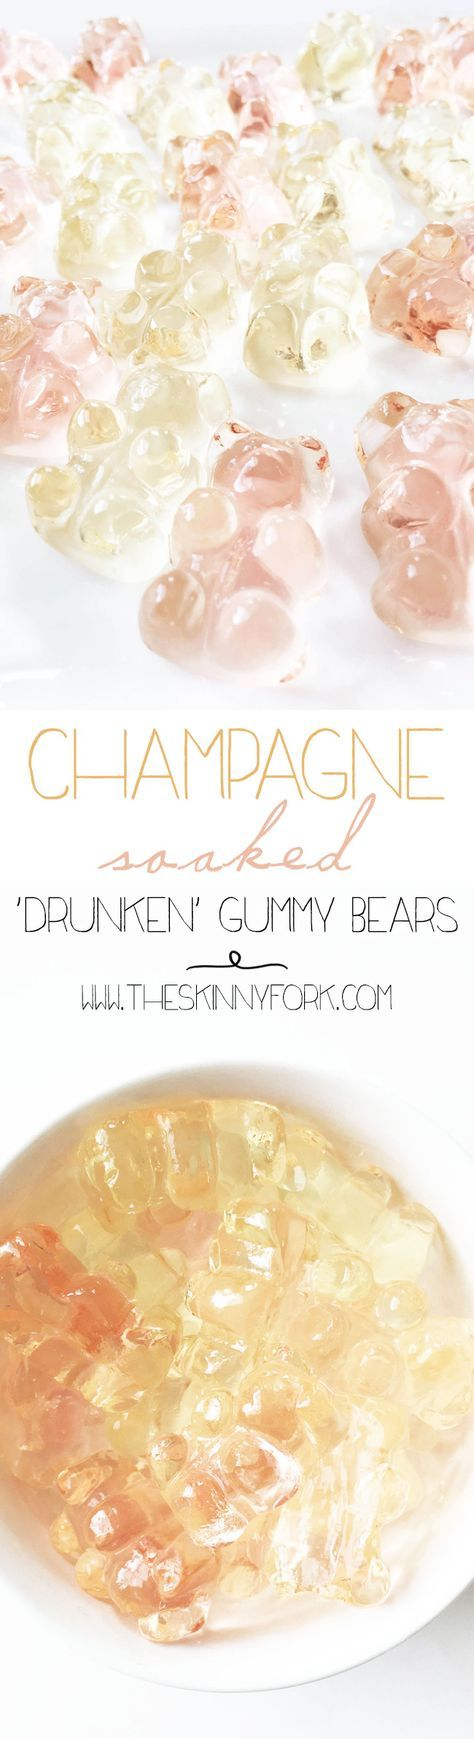 Champagne Soaked 'Drunken' Gummy Bears